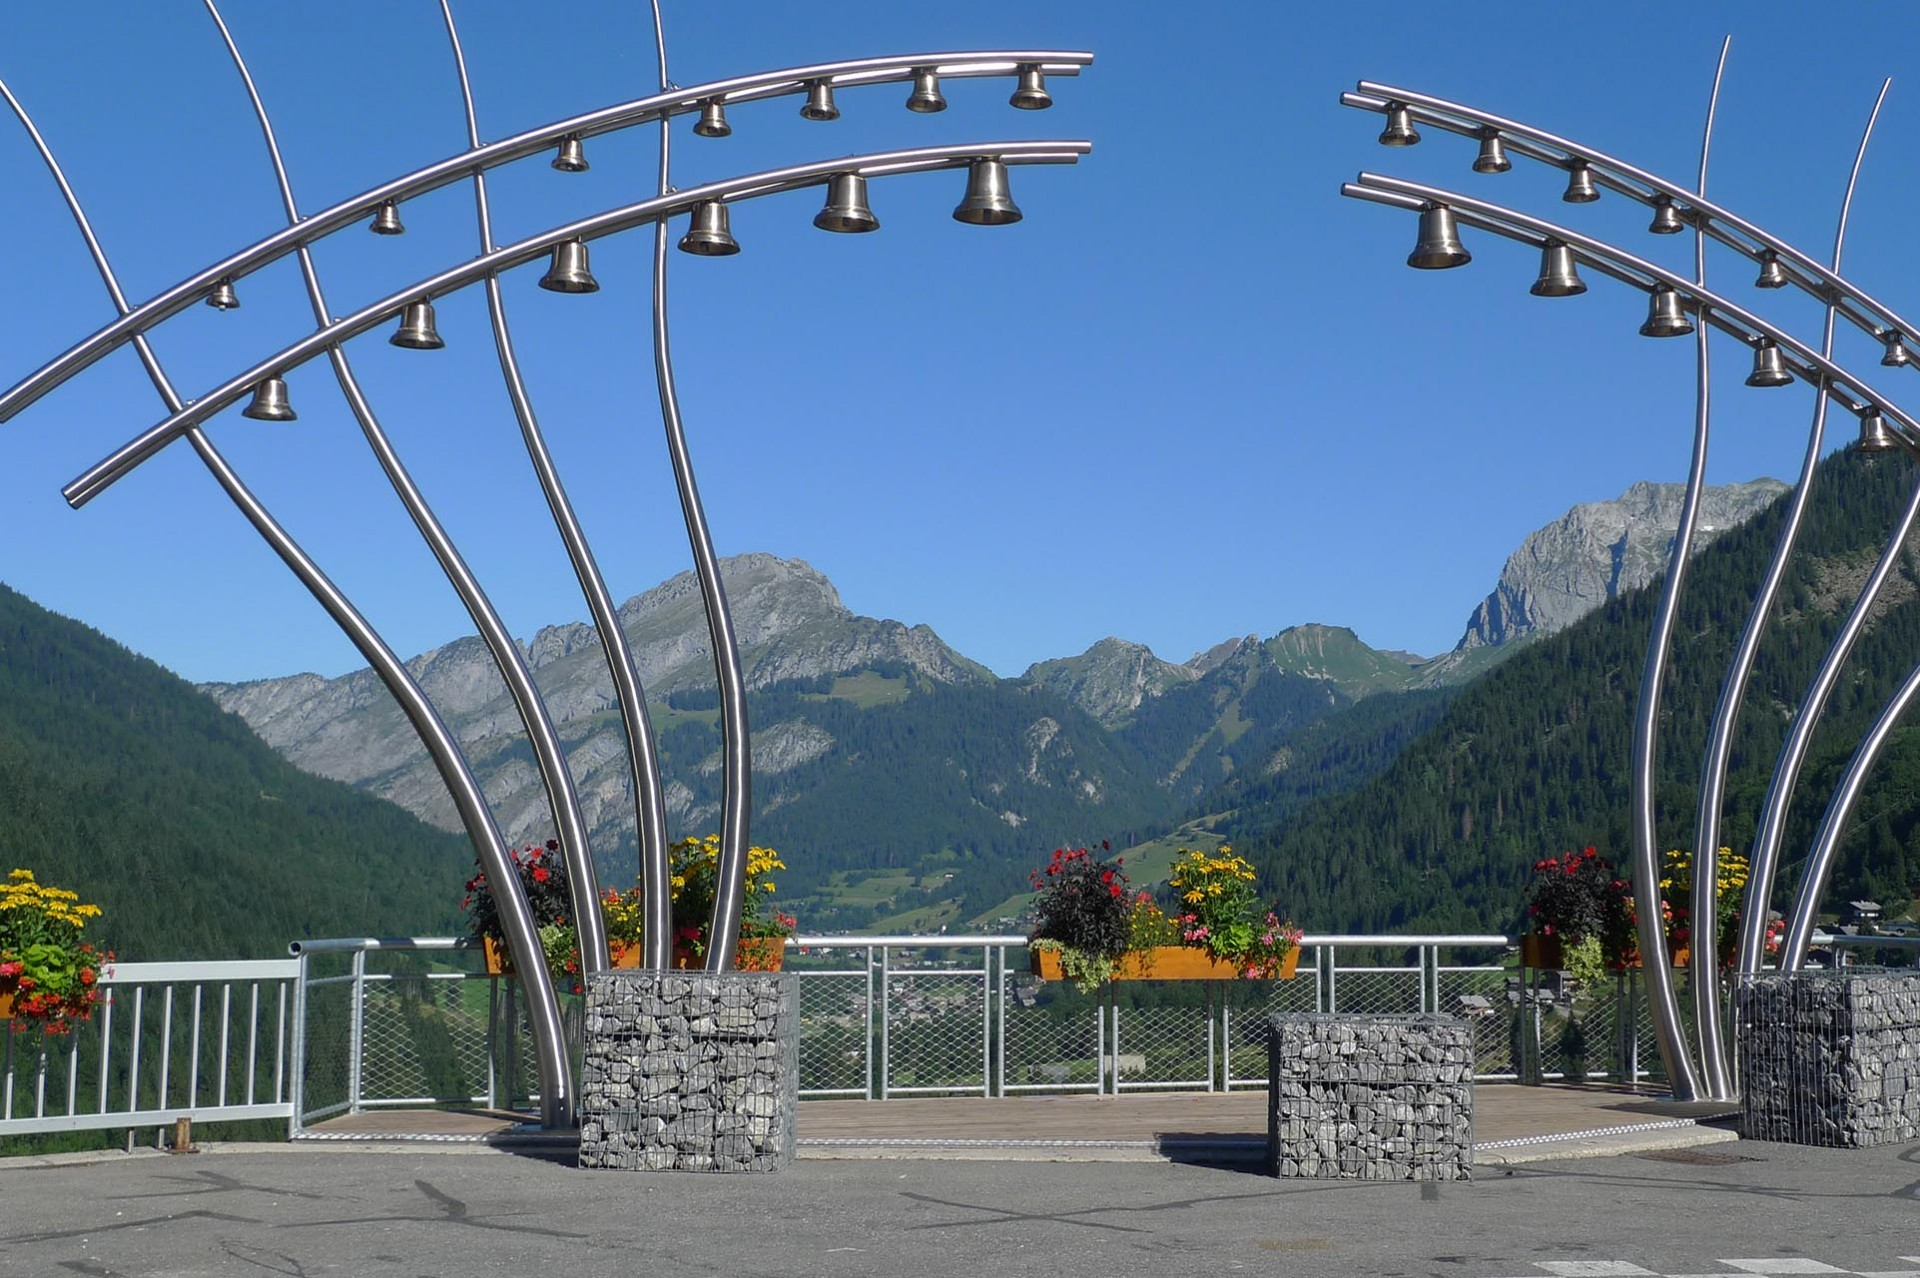 Châtel to the sound of bells